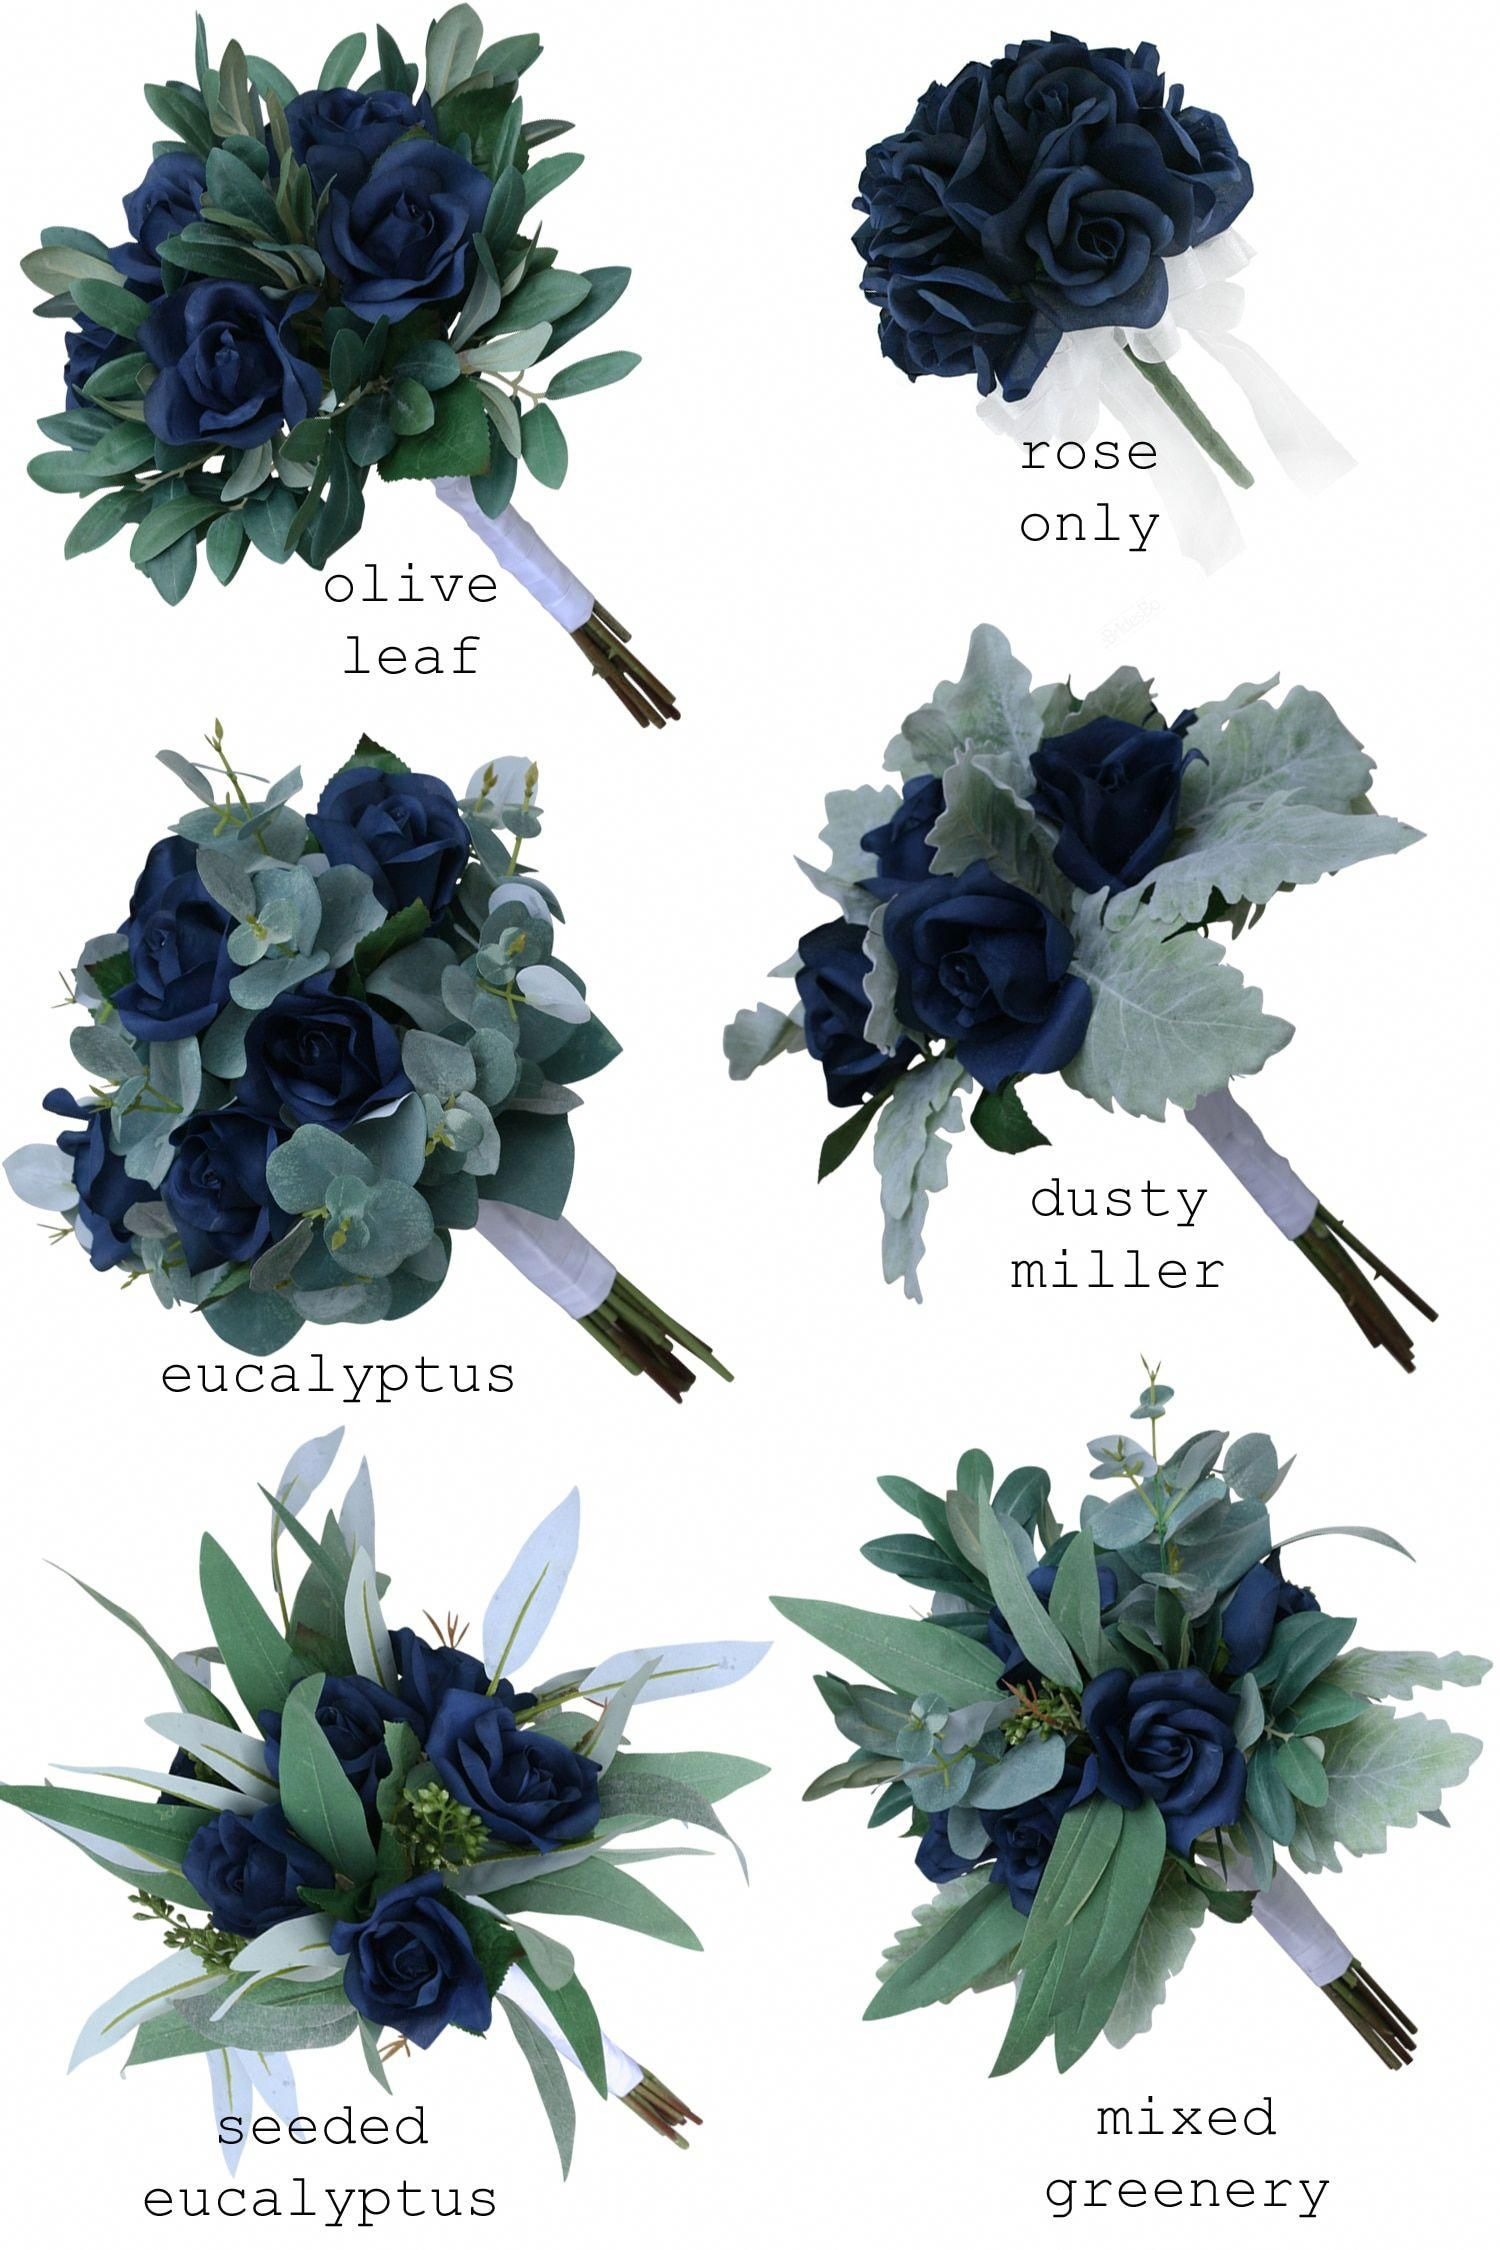 Navy Blue Rose Silk Wedding Bouquets Artificial Flowers Bridesmaid Bouquets One Dozen Roses In 2020 Bridesmaid Flowers Fall Wedding Flowers Artificial Flowers Wedding